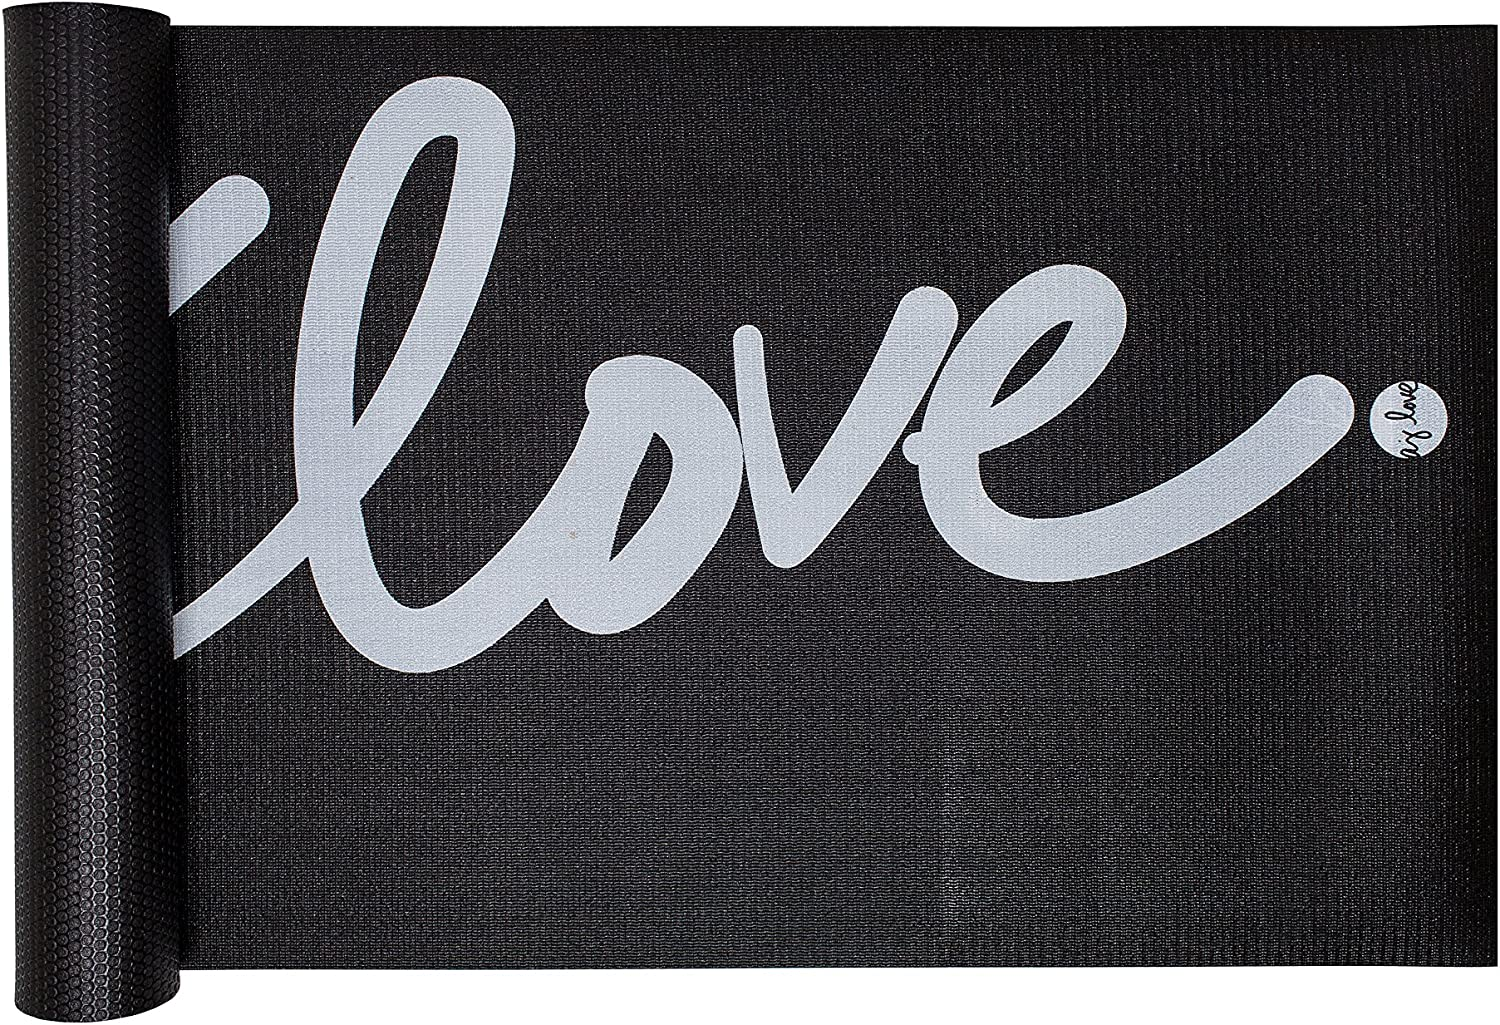 High Density Hand Designed Mantra Inspired Professional Yoga Mat by aj Love